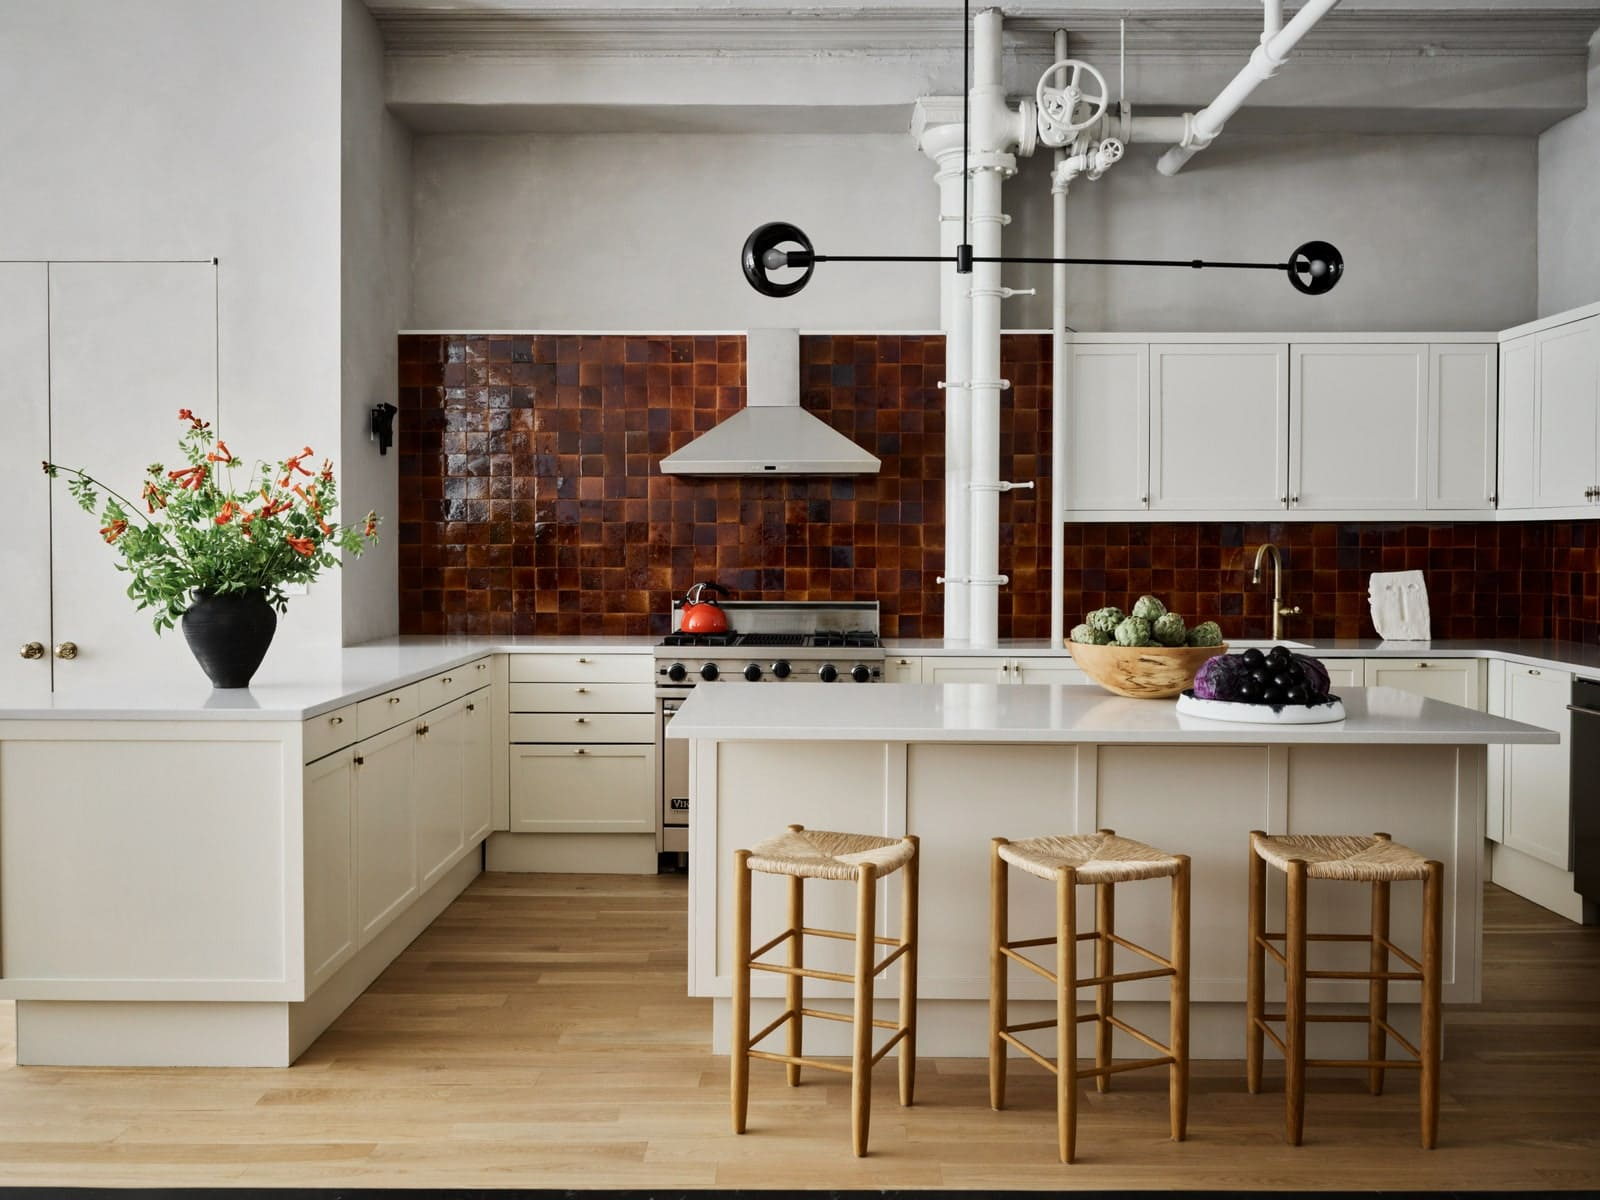 What Would Bobby Do?: How To Spend $50, $100, $500 Or $1000 In Your Kitchen - Bobby Berk